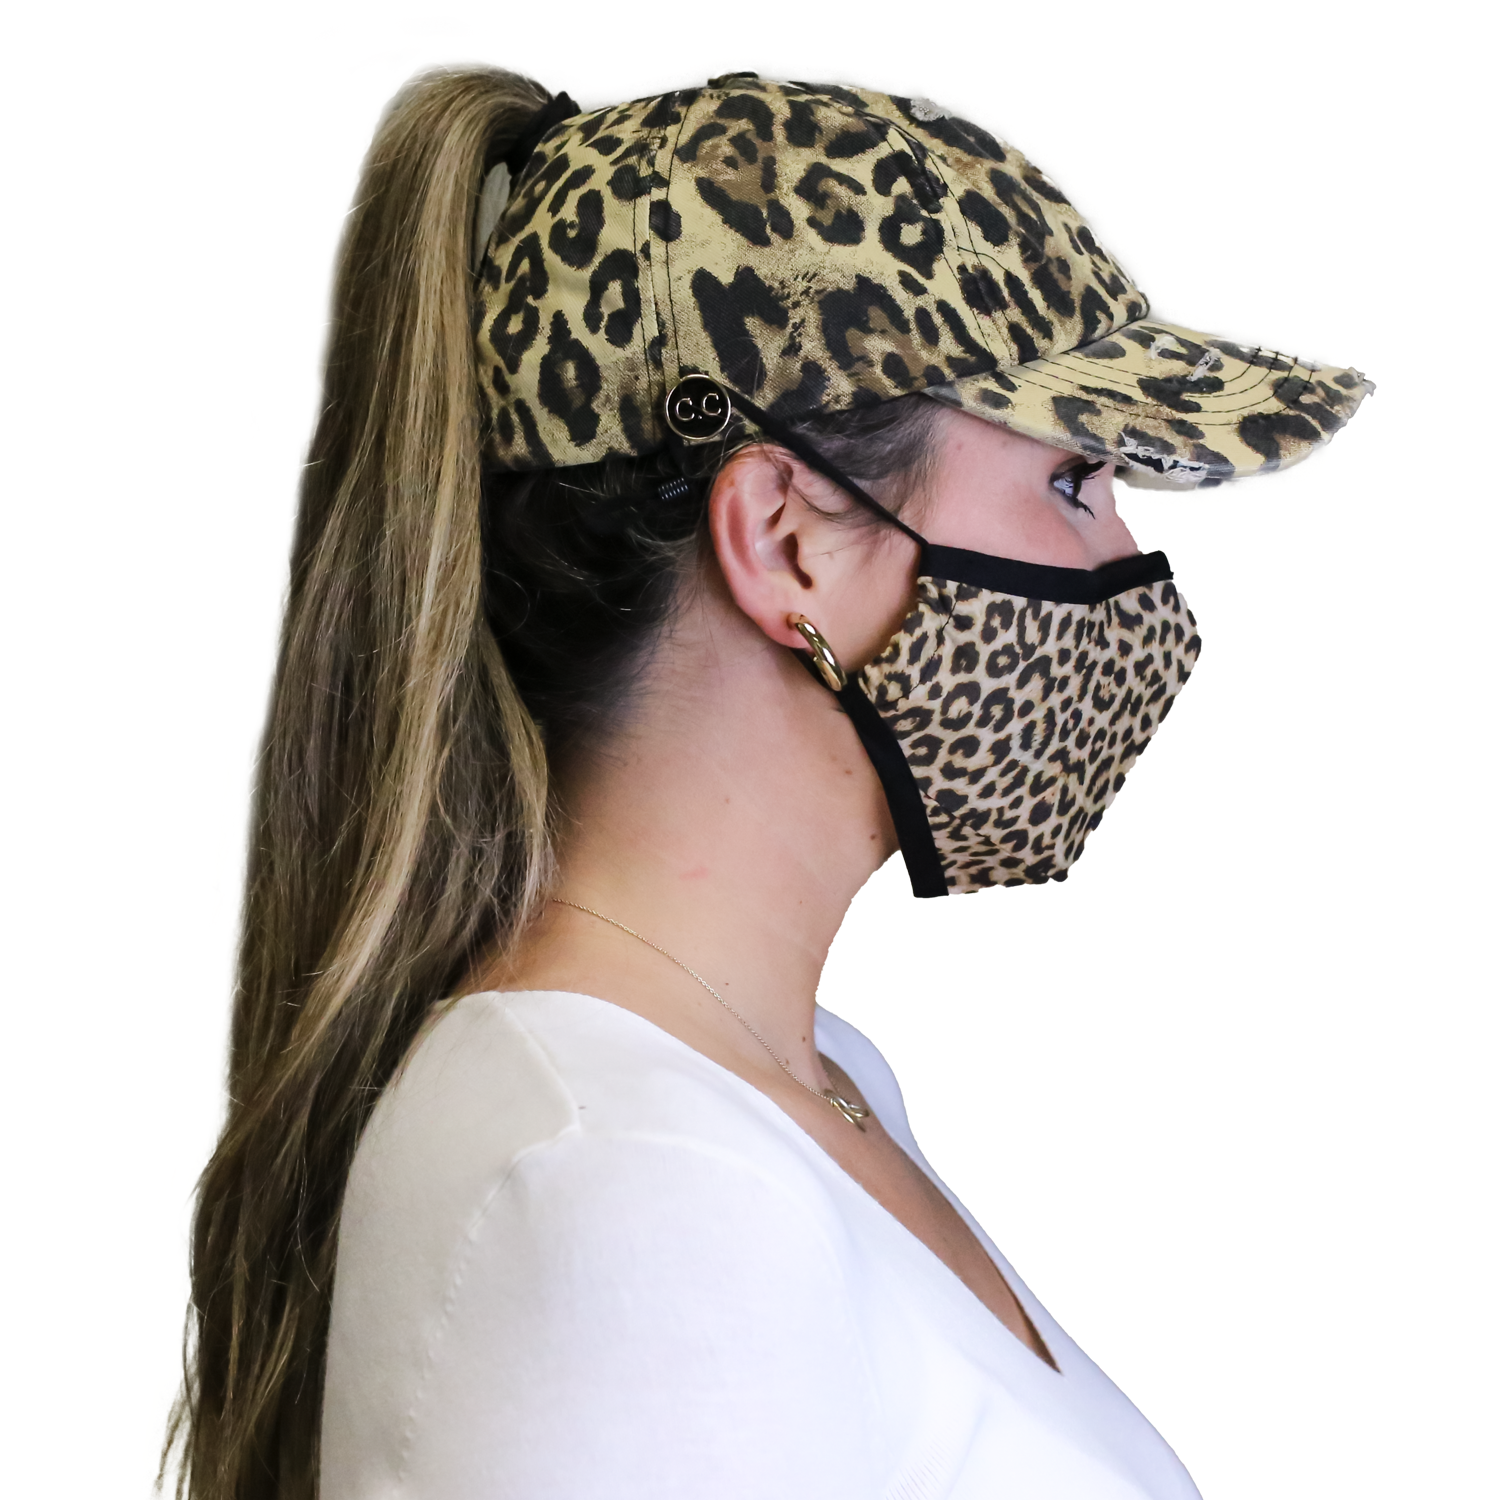 BT-799 C.C Washed Denim Criss Cross Pony Cap with Buttons - Leopard